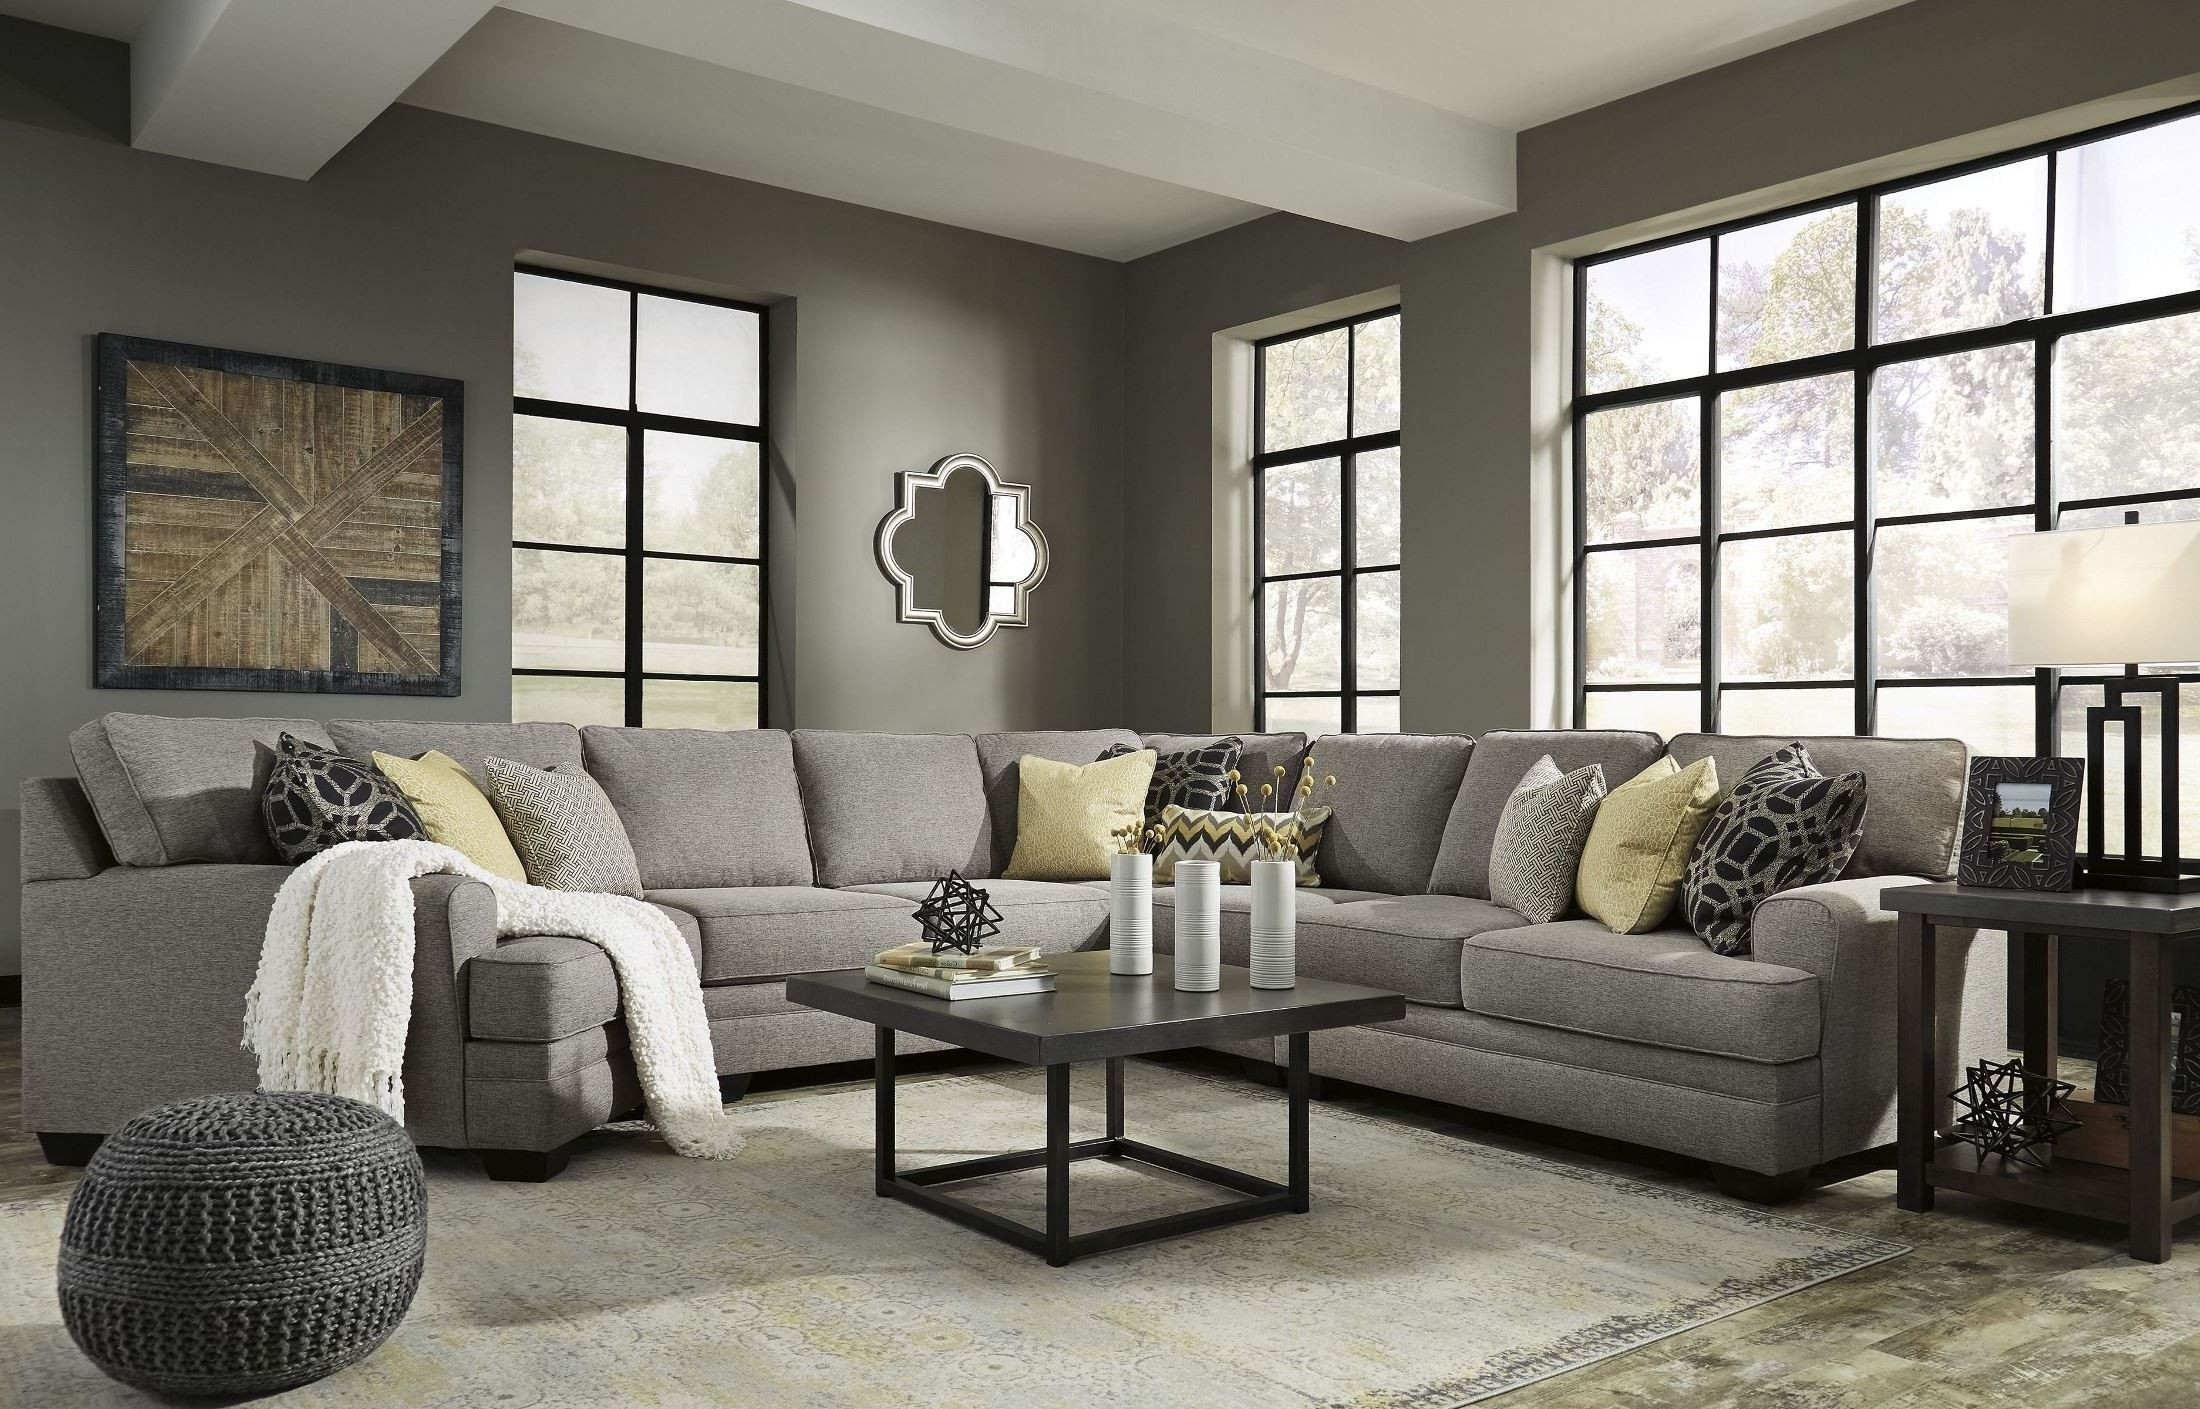 Cresson Pewter LAF Cuddler Sectional, 54907-SEC6, Ashley